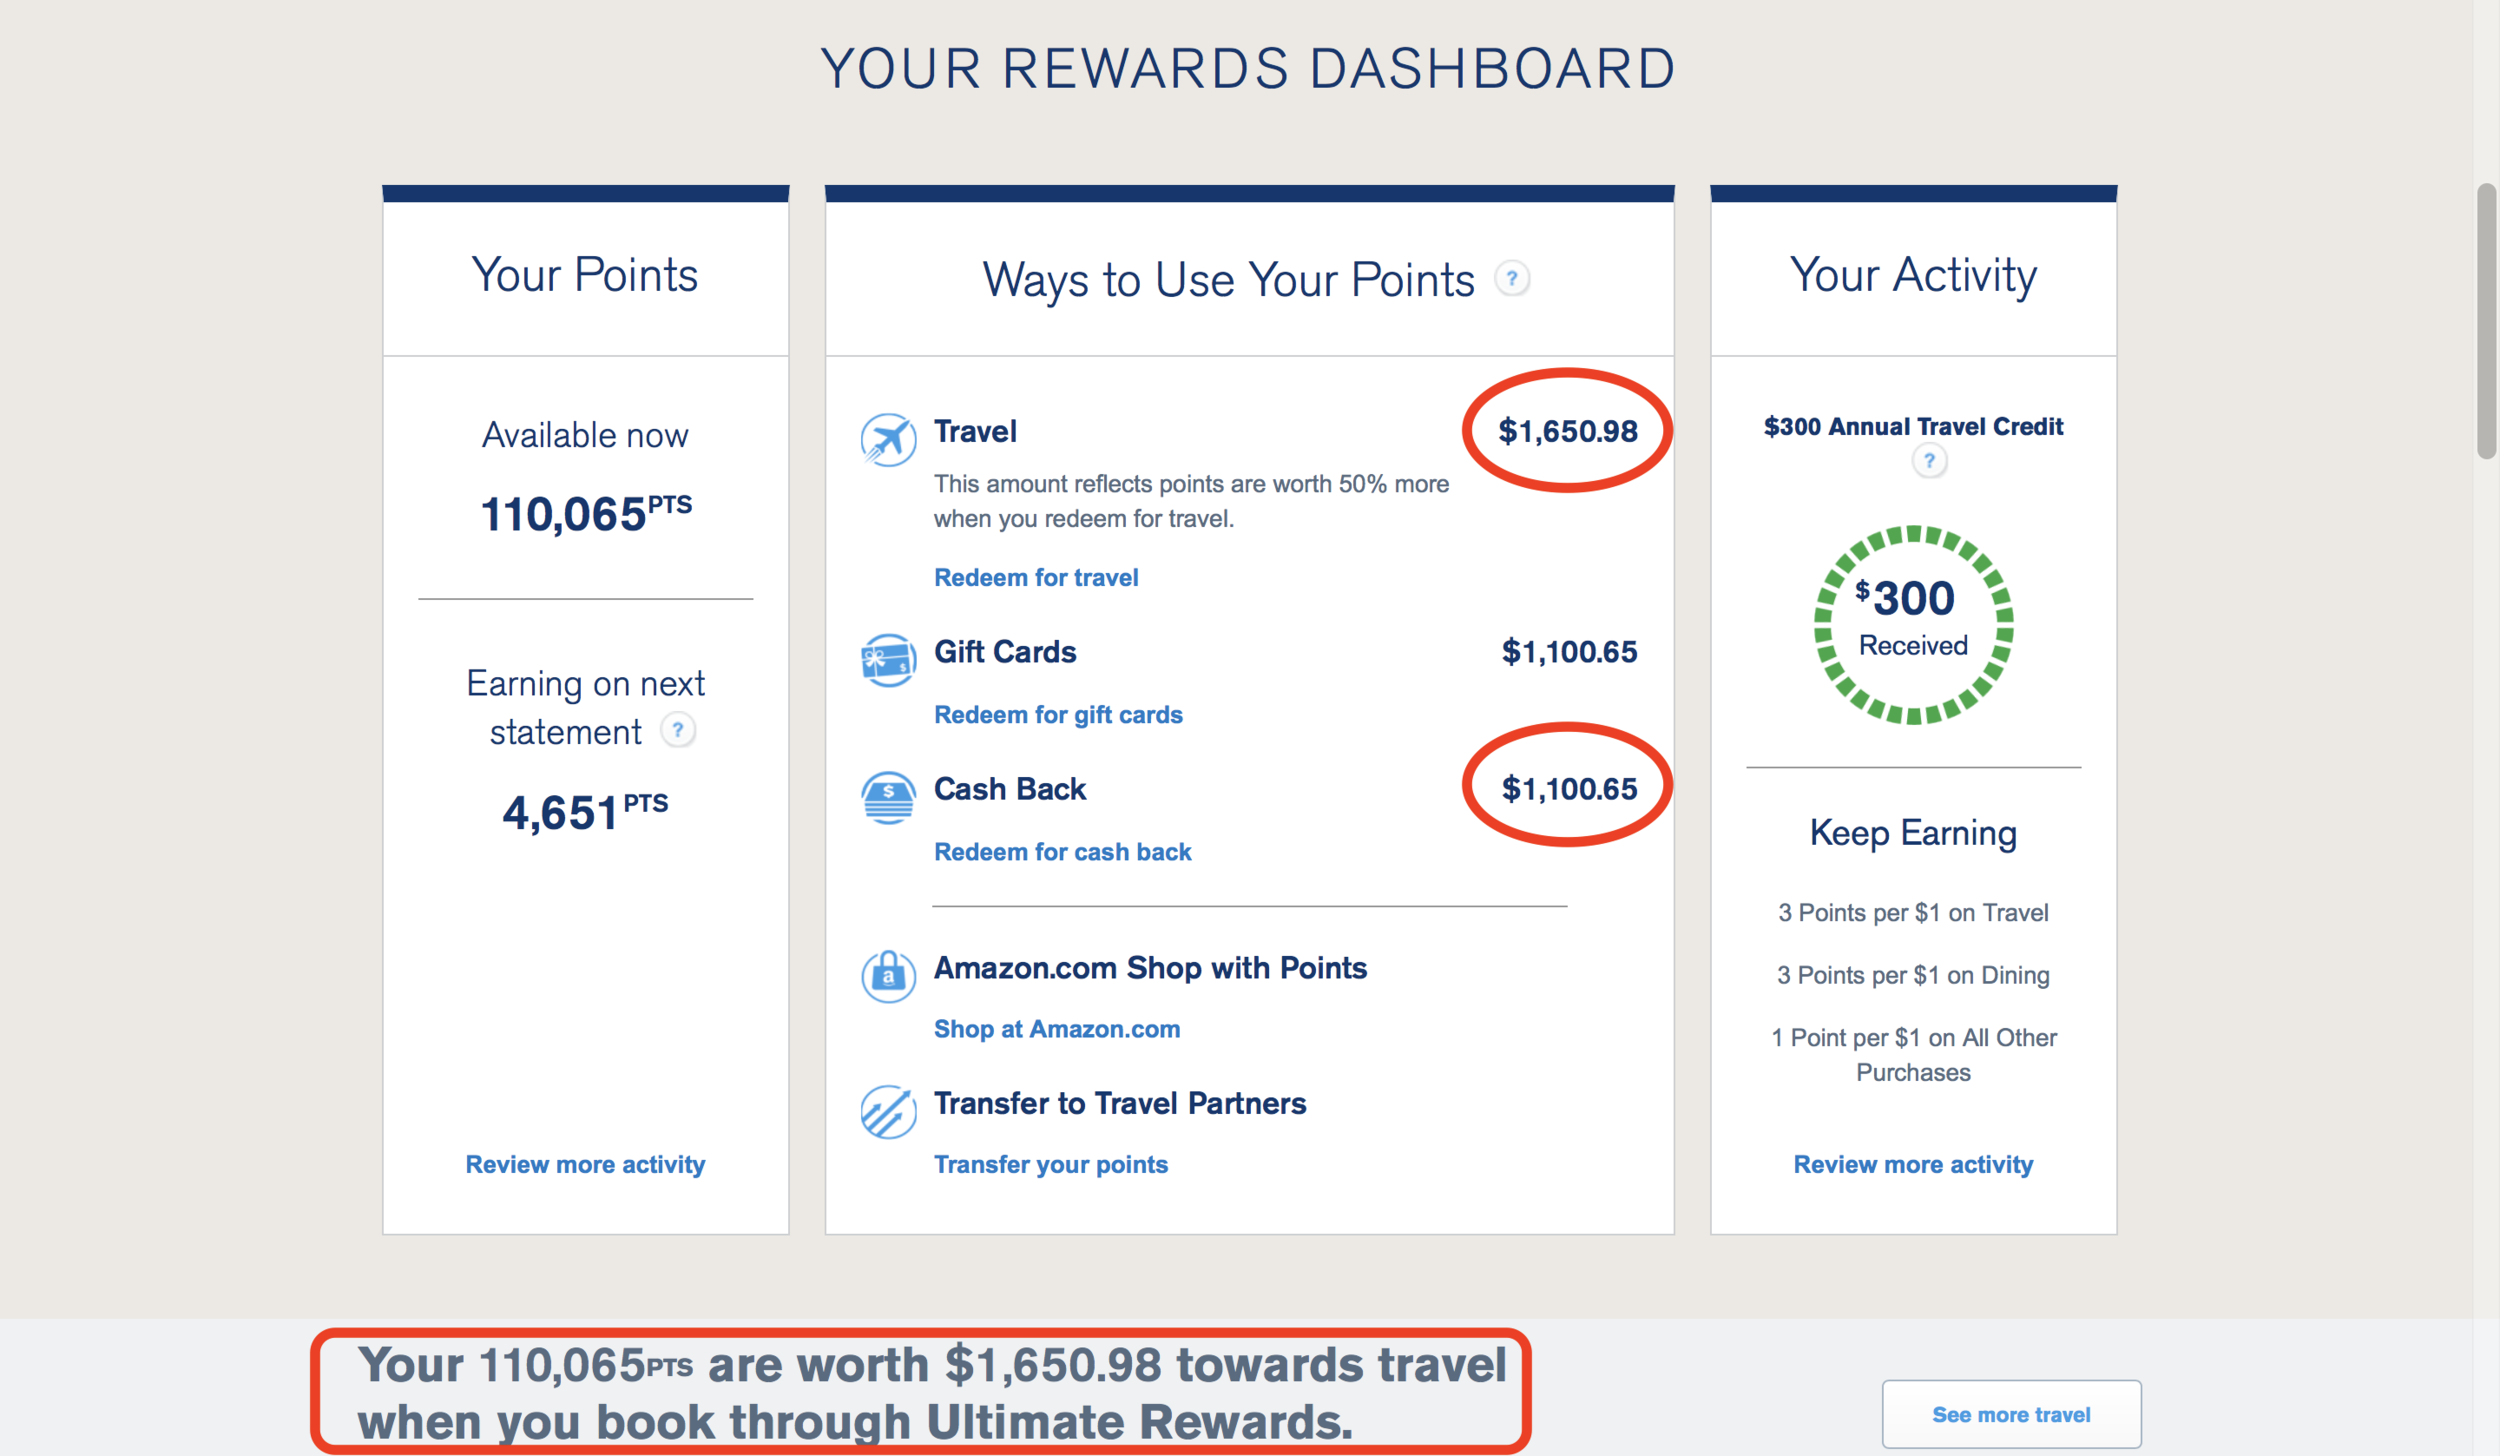 With the Sapphire Reserve, points are worth 1.5 cents each when used for travel booked through Chase.